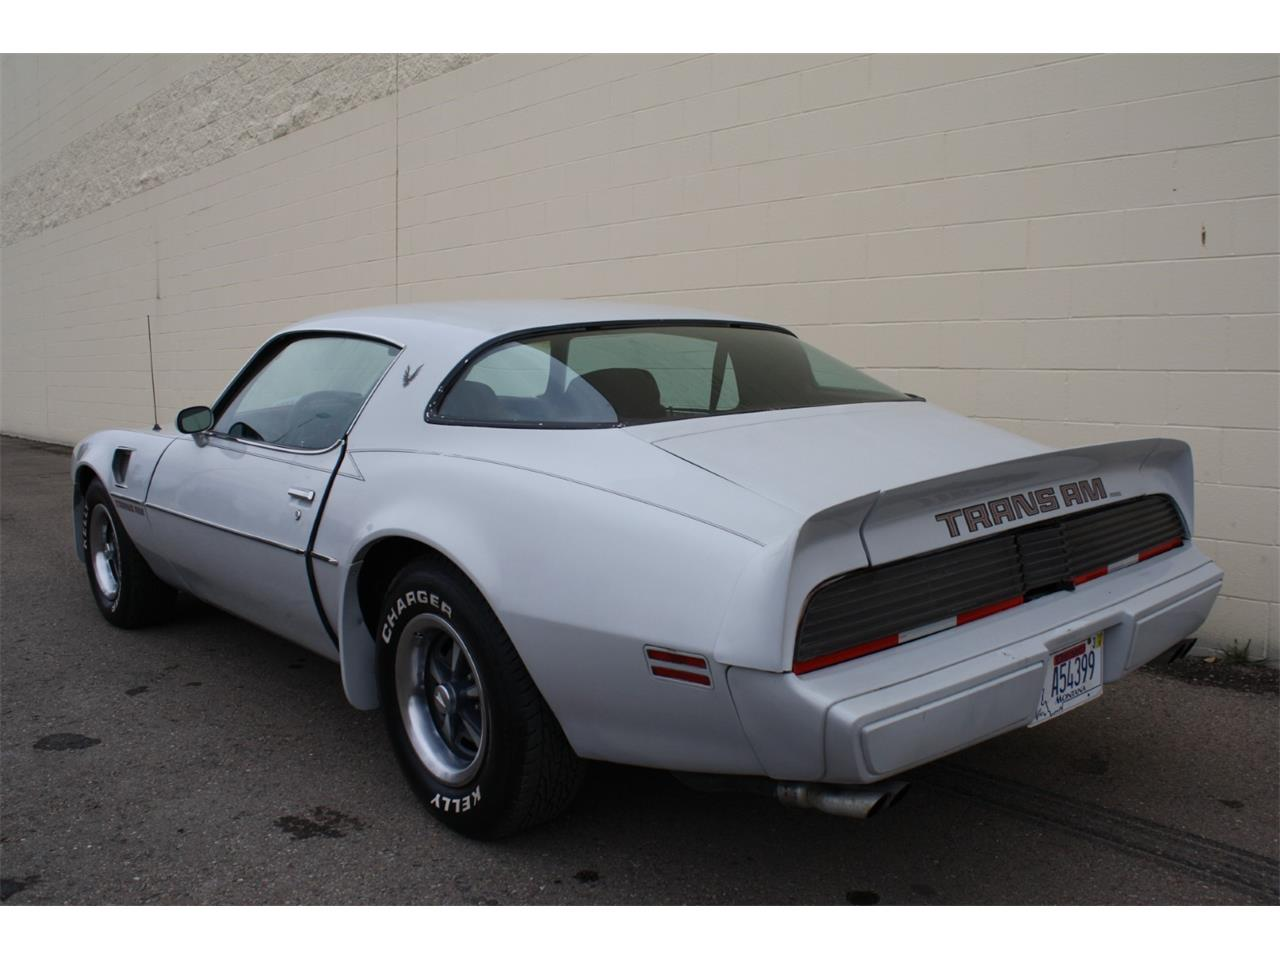 Large Picture of 1979 Firebird Trans Am located in Tacoma Washington Auction Vehicle - Q67P